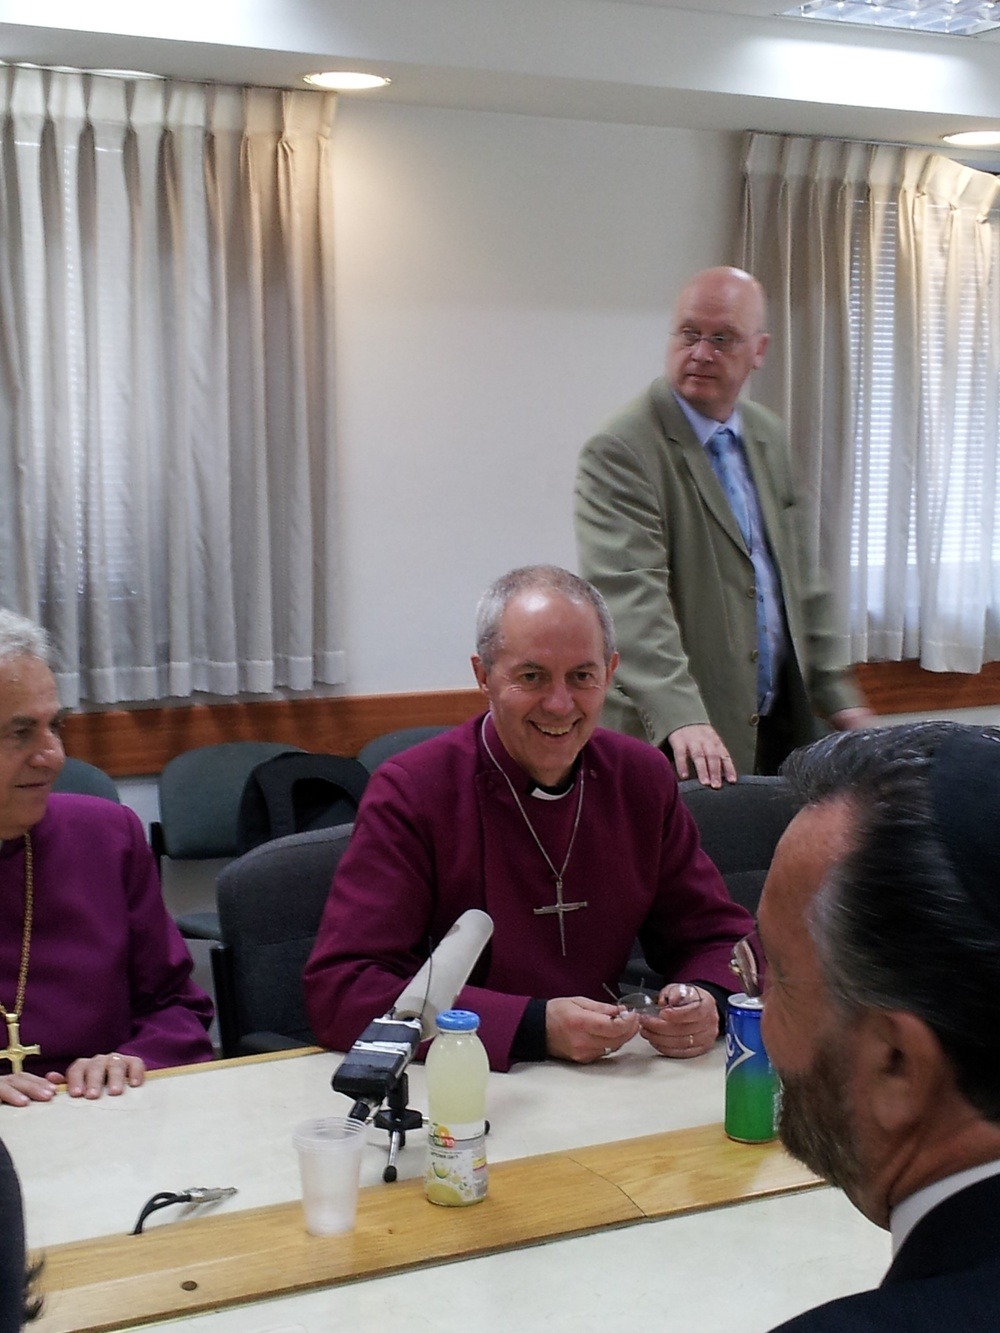 Click photo to download. Caption: Justin Welby (sitting in center), the Archbishop of Canterbury, at a press conference at the Israeli Chief Rabbinate in Jerusalem during his visit to Israel on Thursday. Credit: Rachel Marder.